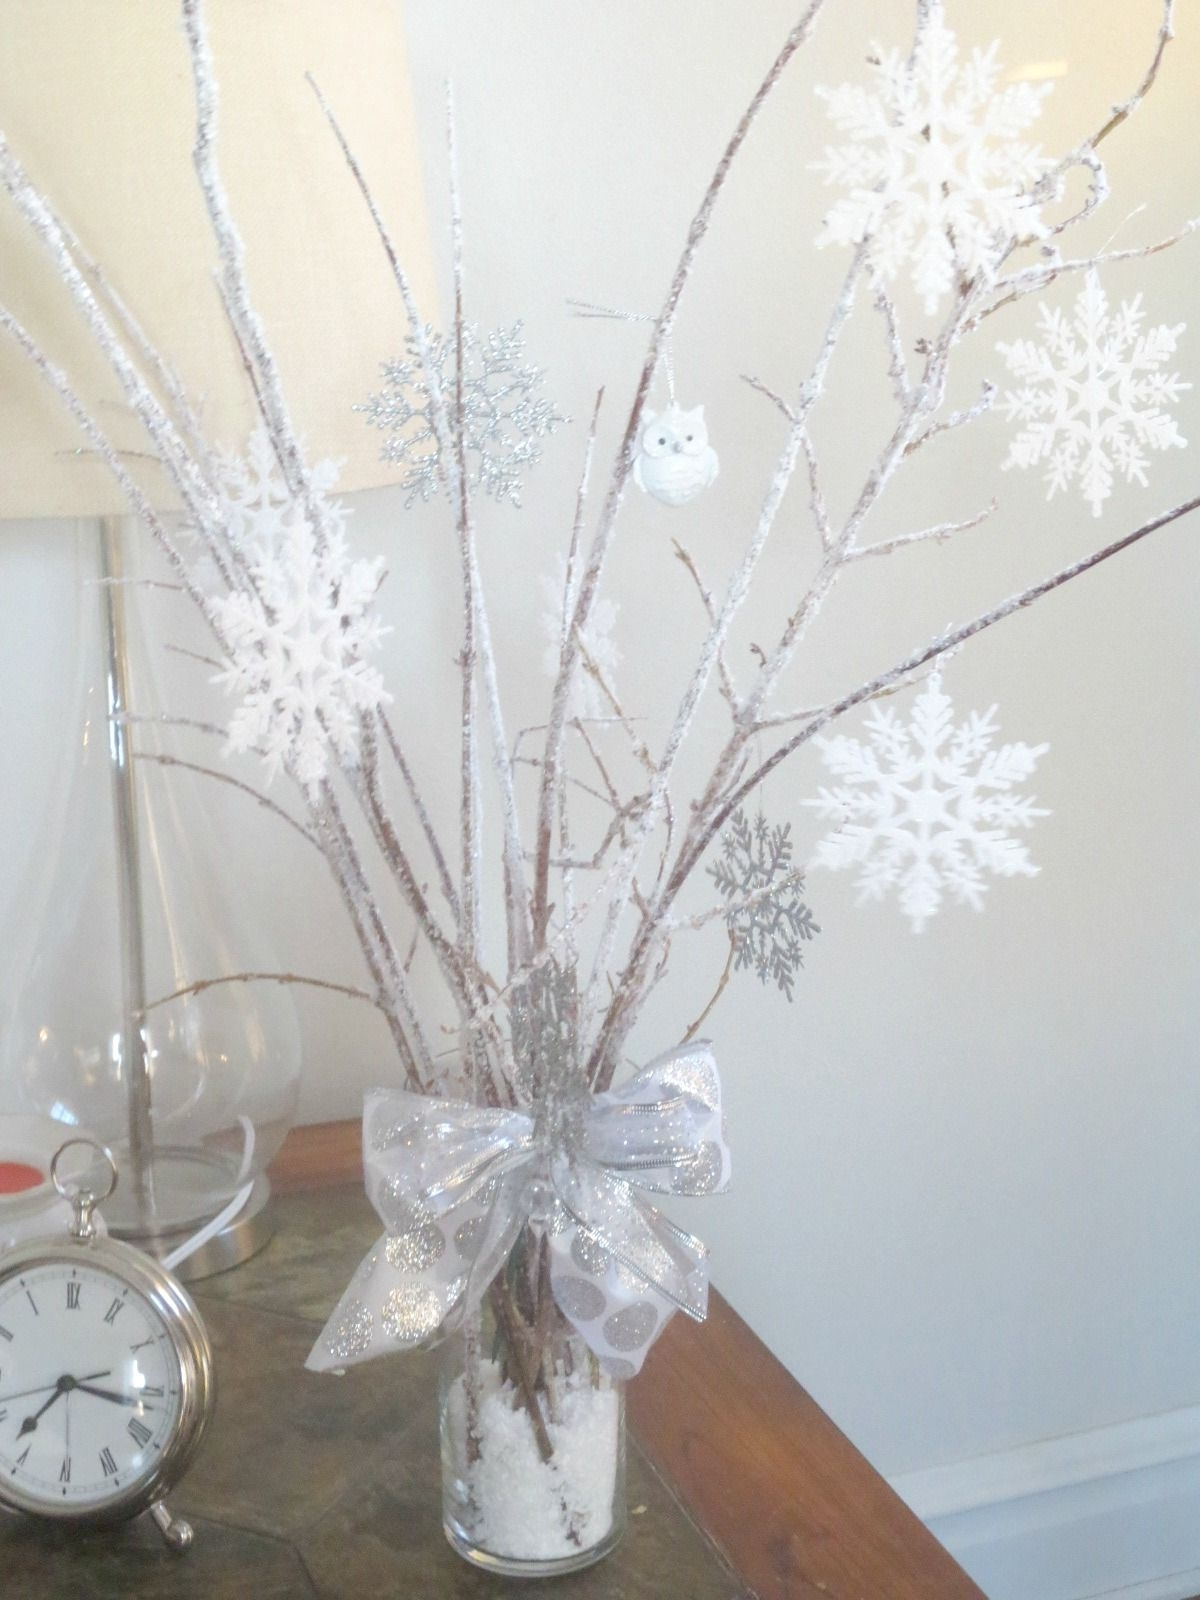 Winter Wonderland Centerpieces With Diy Icy Branches